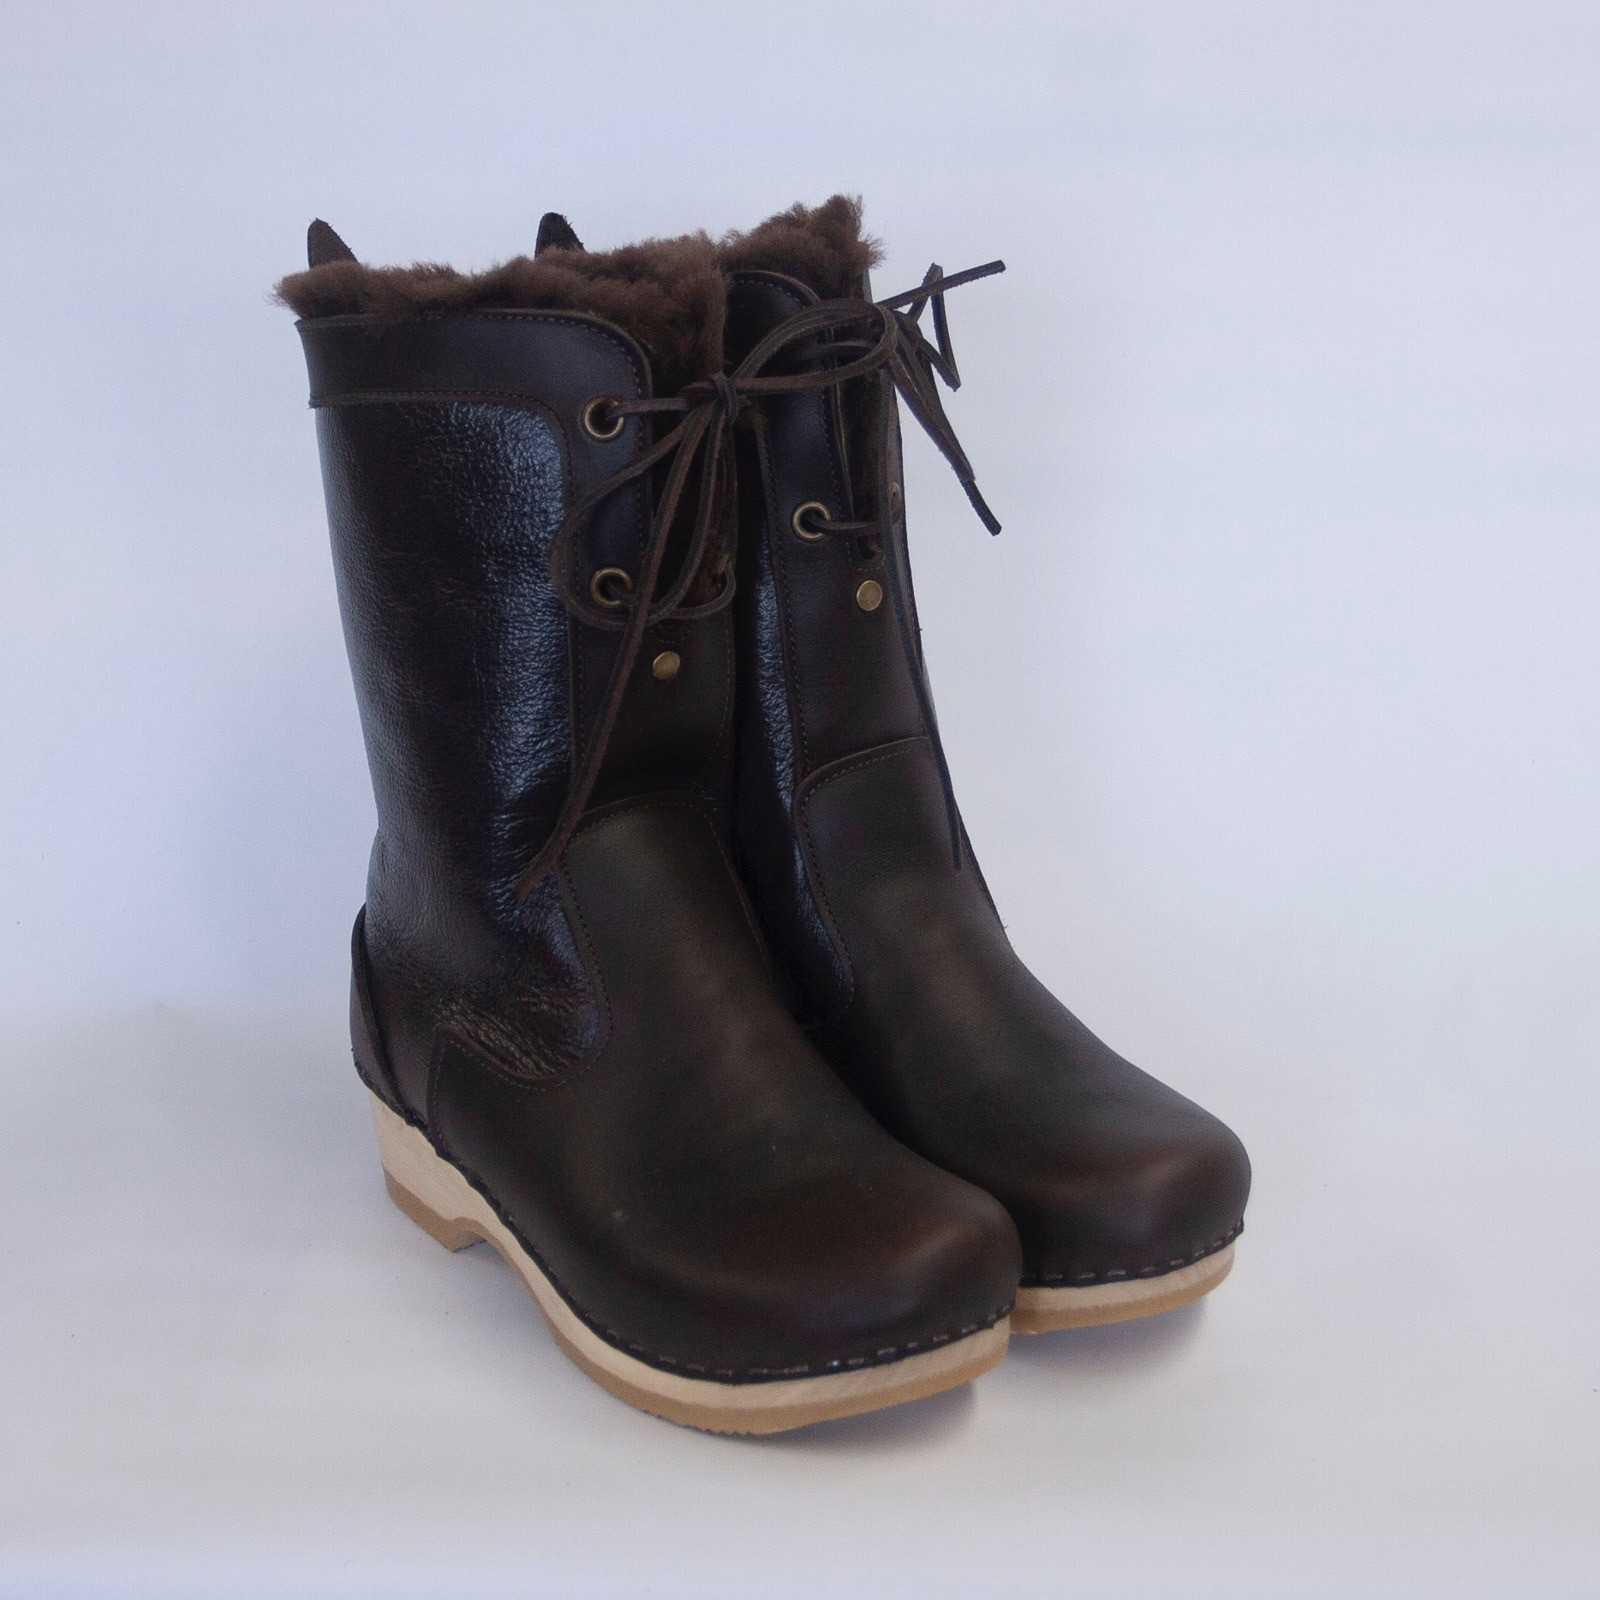 Brown Aviator - Lace Up Shearling Clog Boots